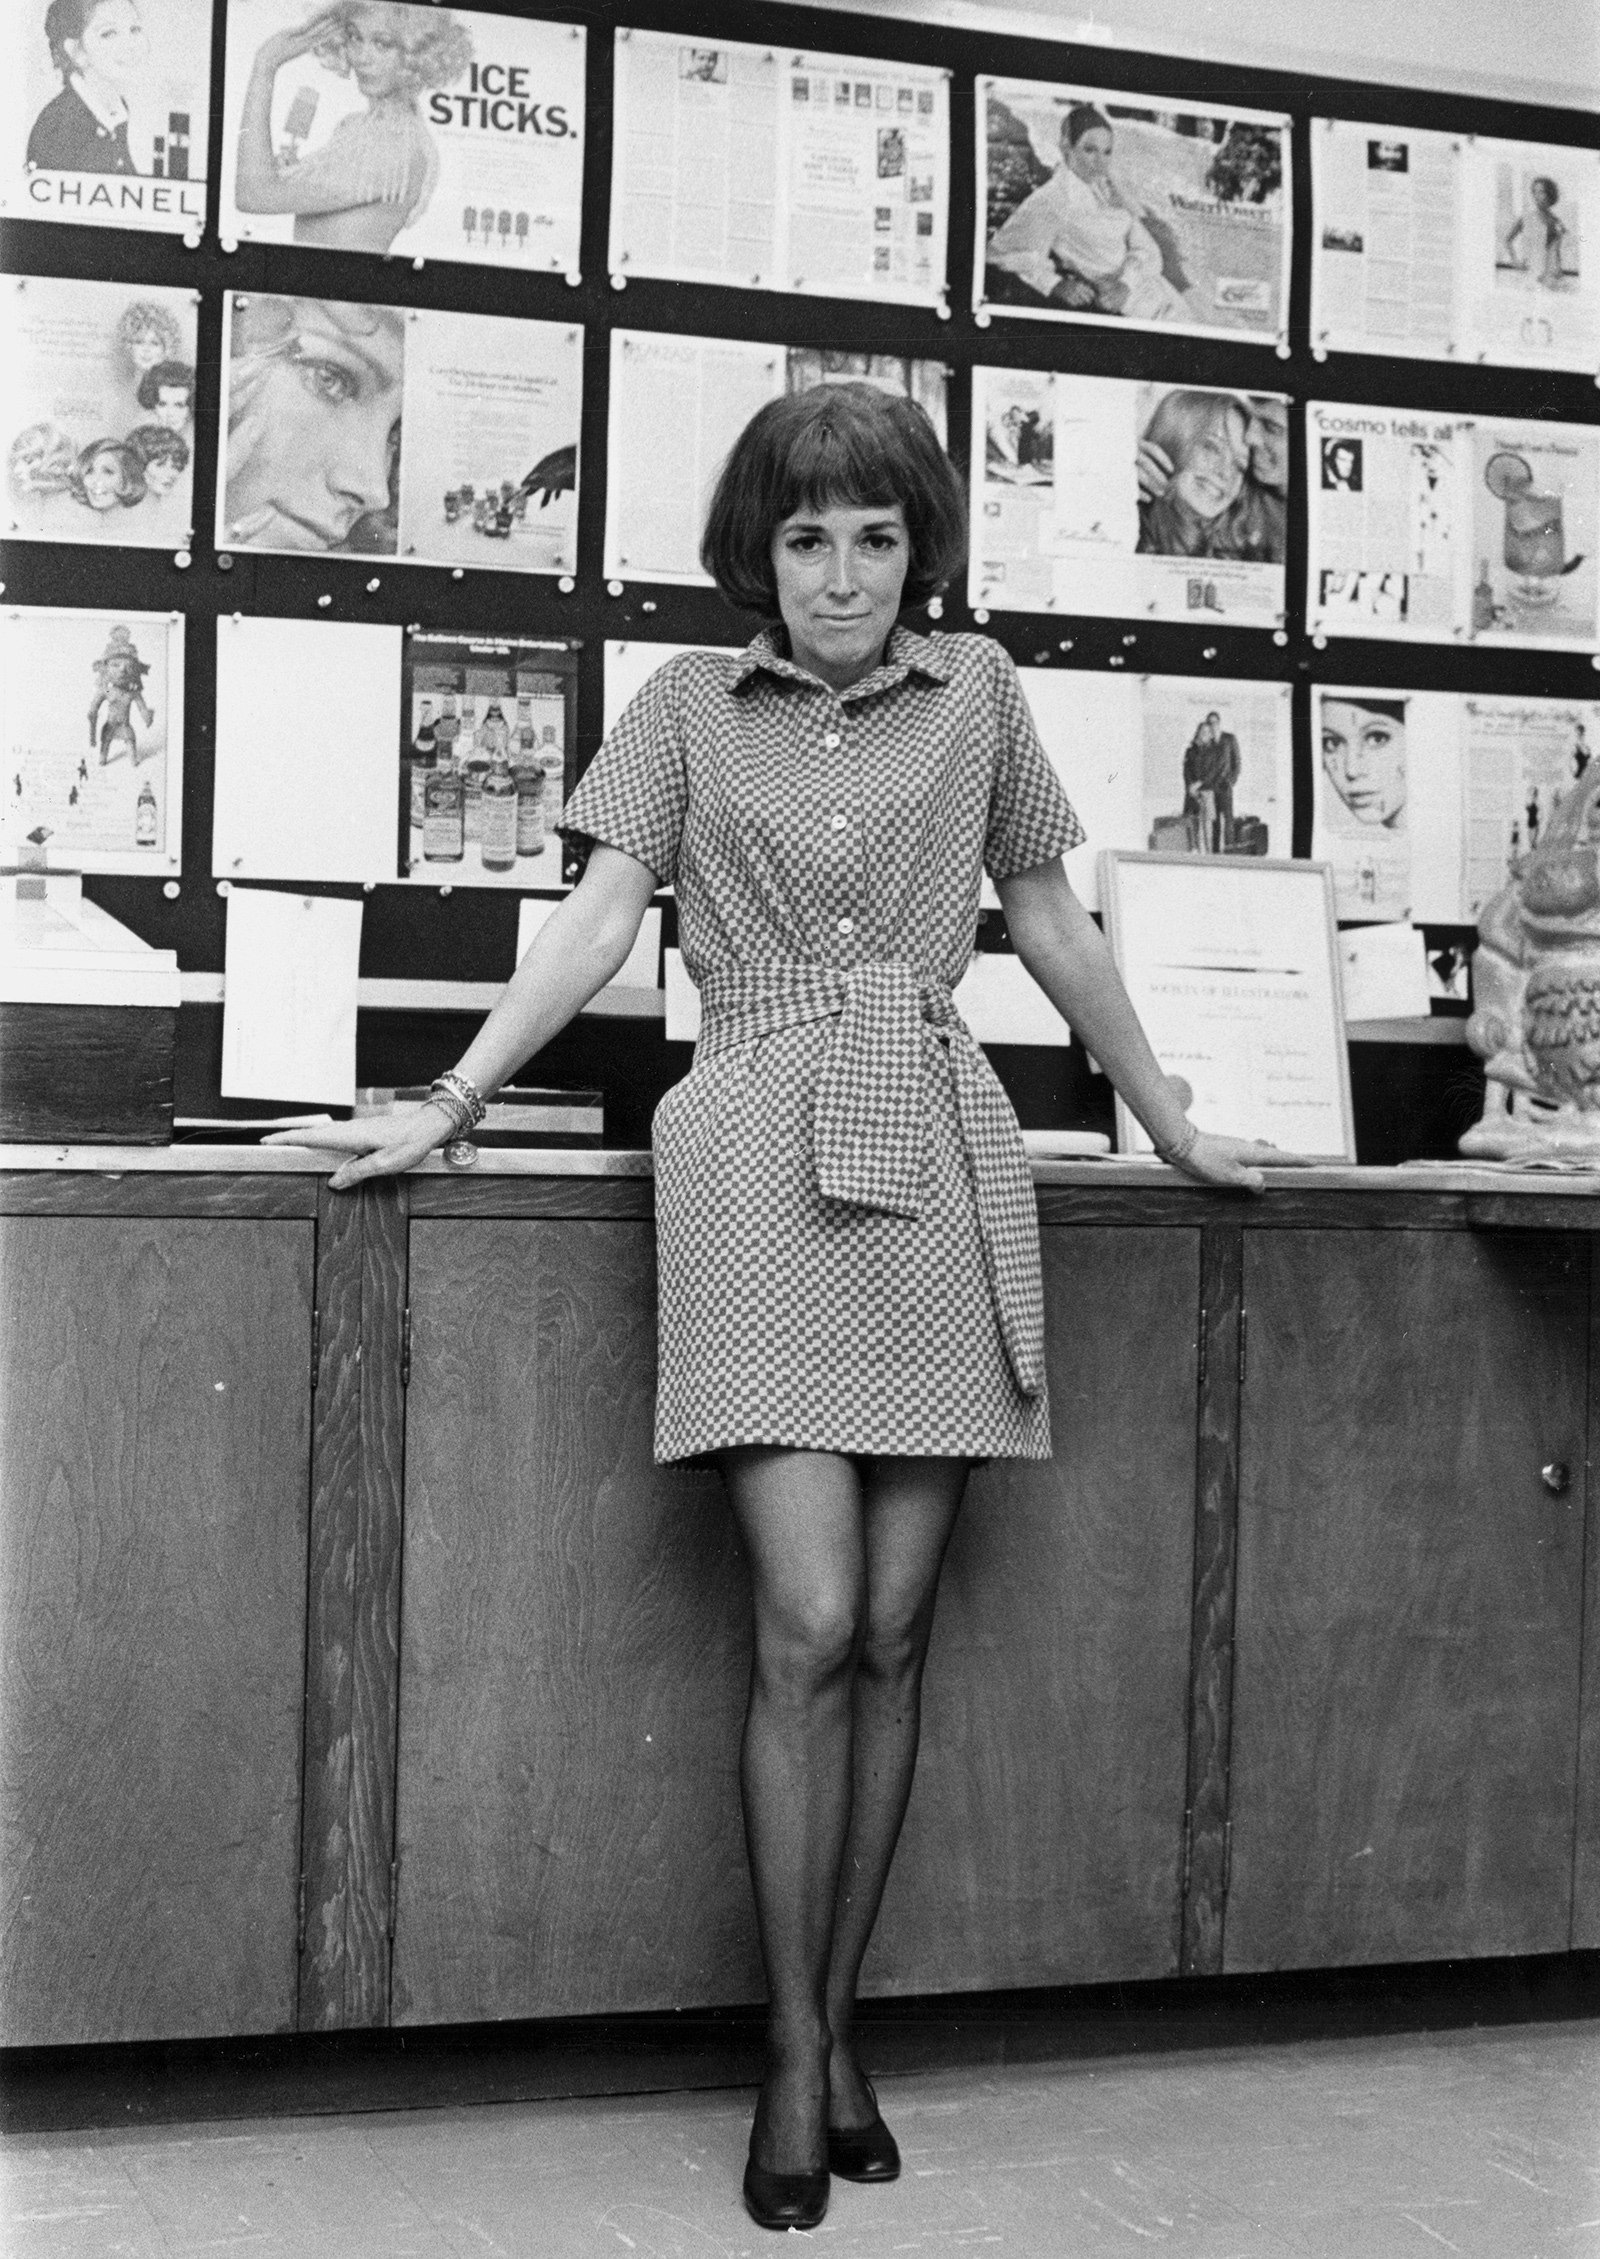 Helen Gurley Brown in the art department of Cosmopolitan shortly after becoming editor in chief, New York City, March 1965